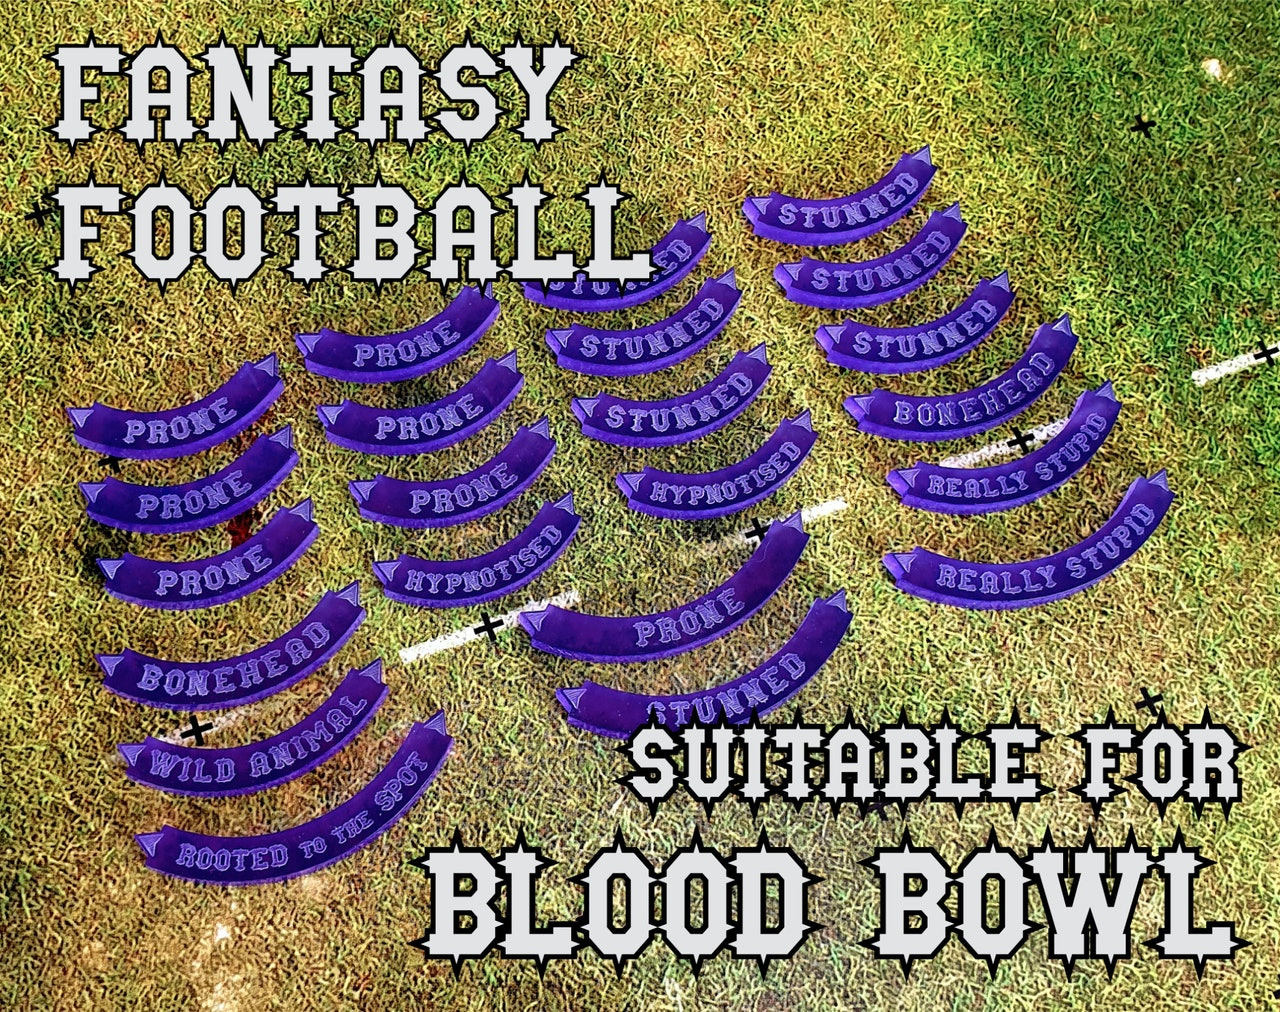 Fantasy Football - Suitable for Blood Bowl